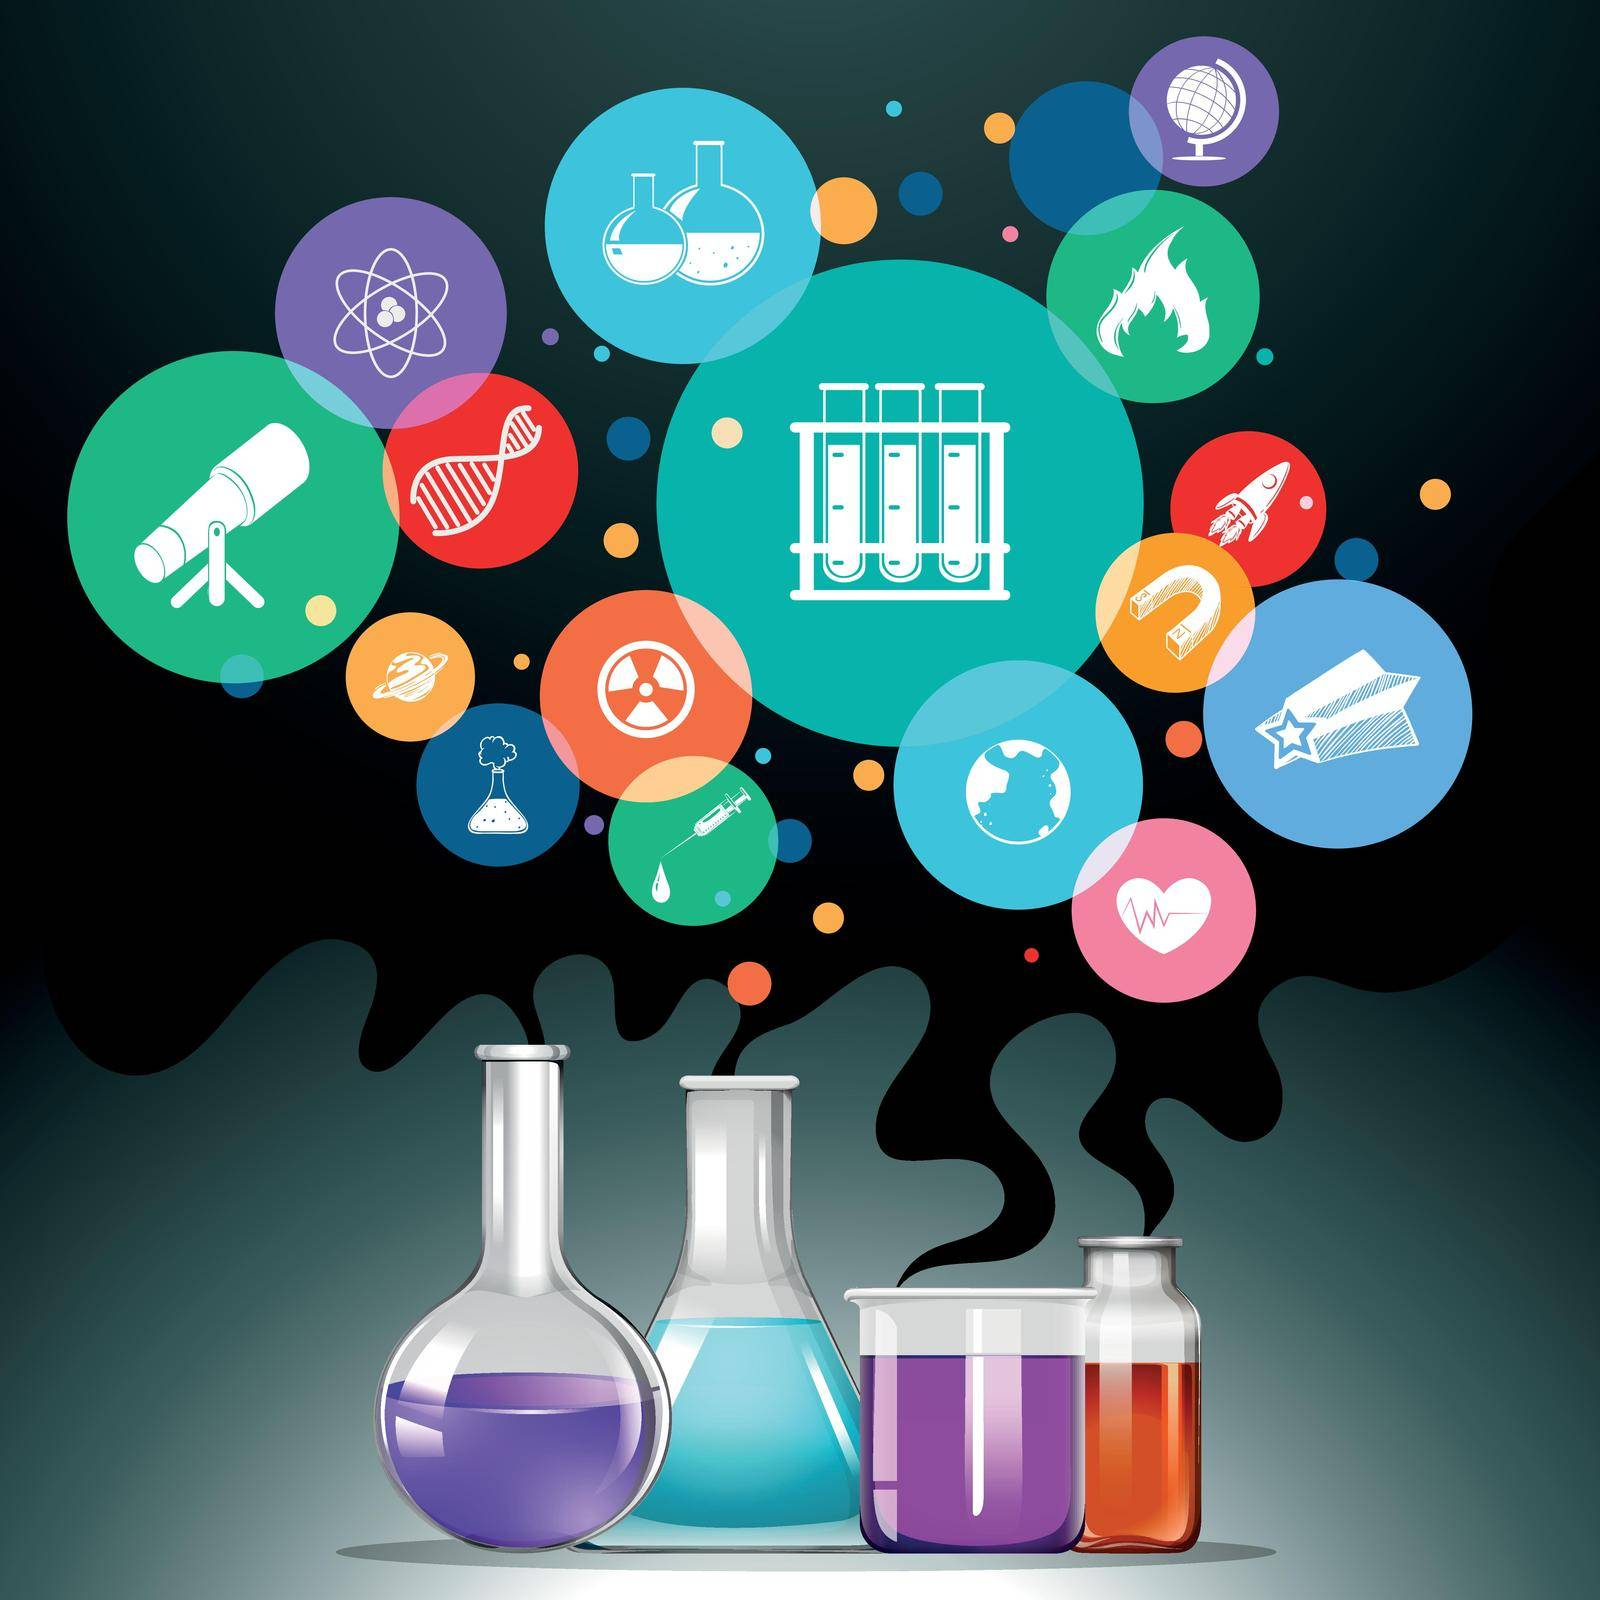 Infographic with science equipment illustration